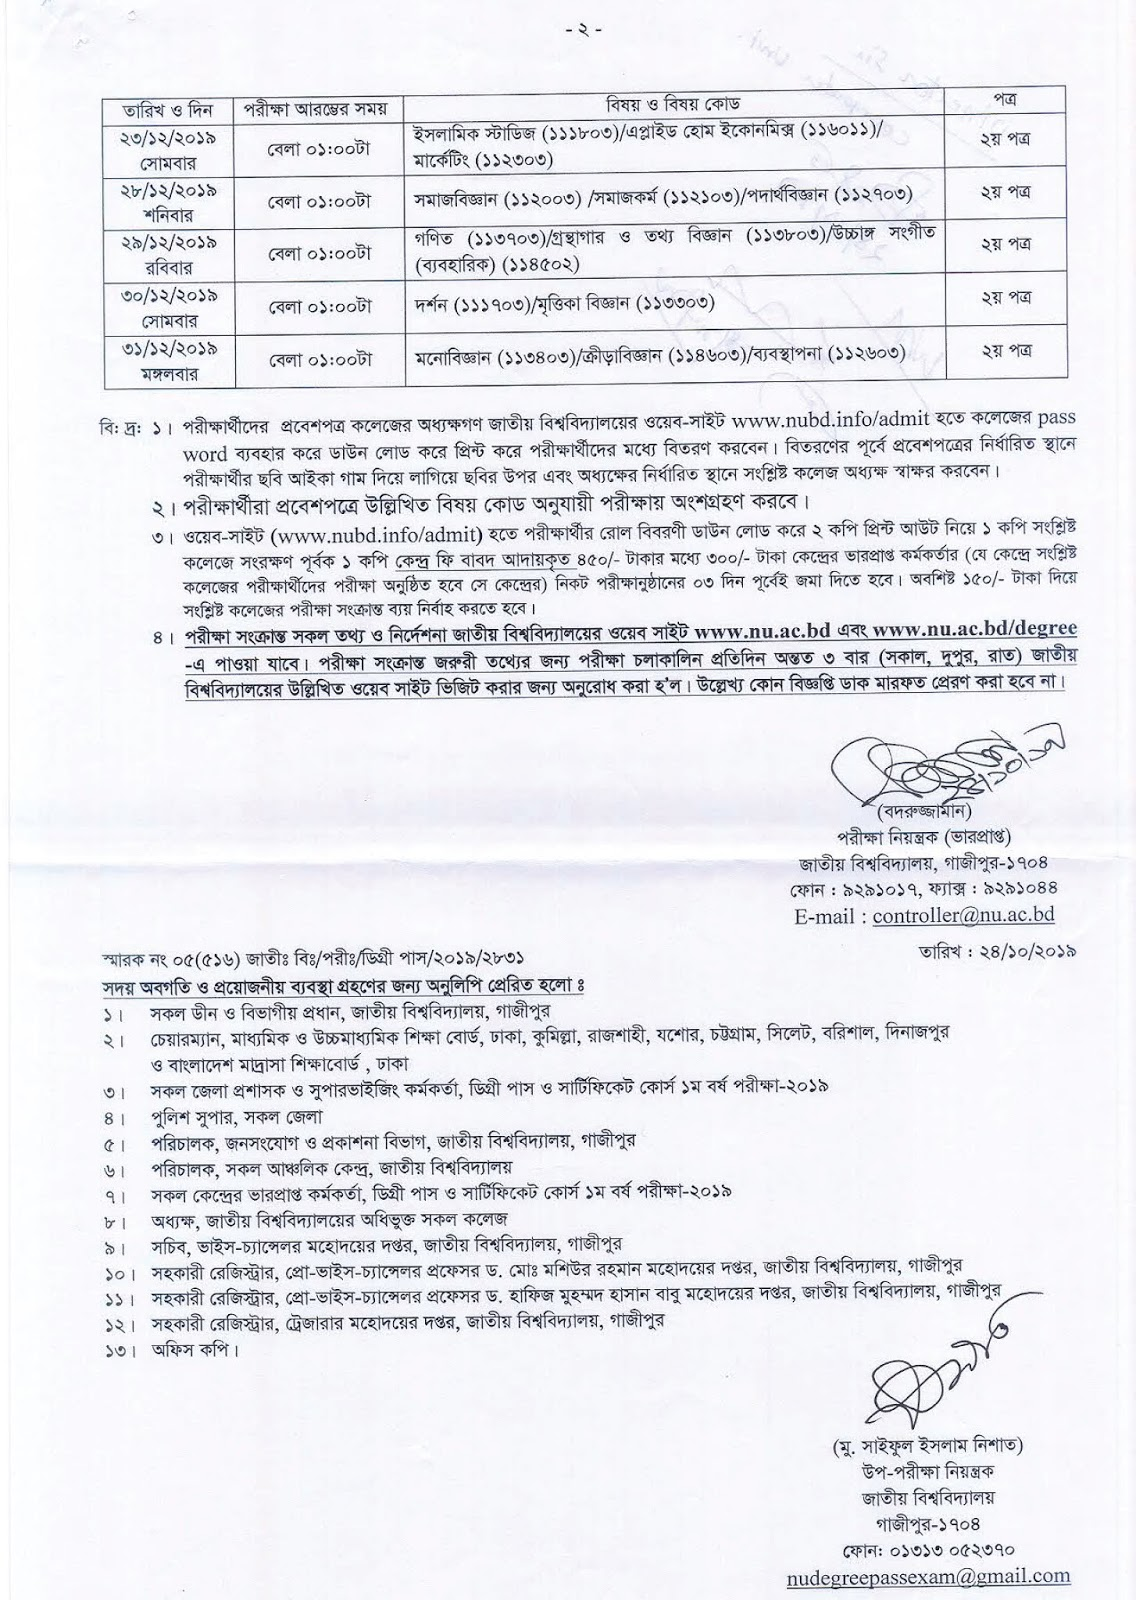 NU Degree 1st Year Exam Routine 2019 Download PDF